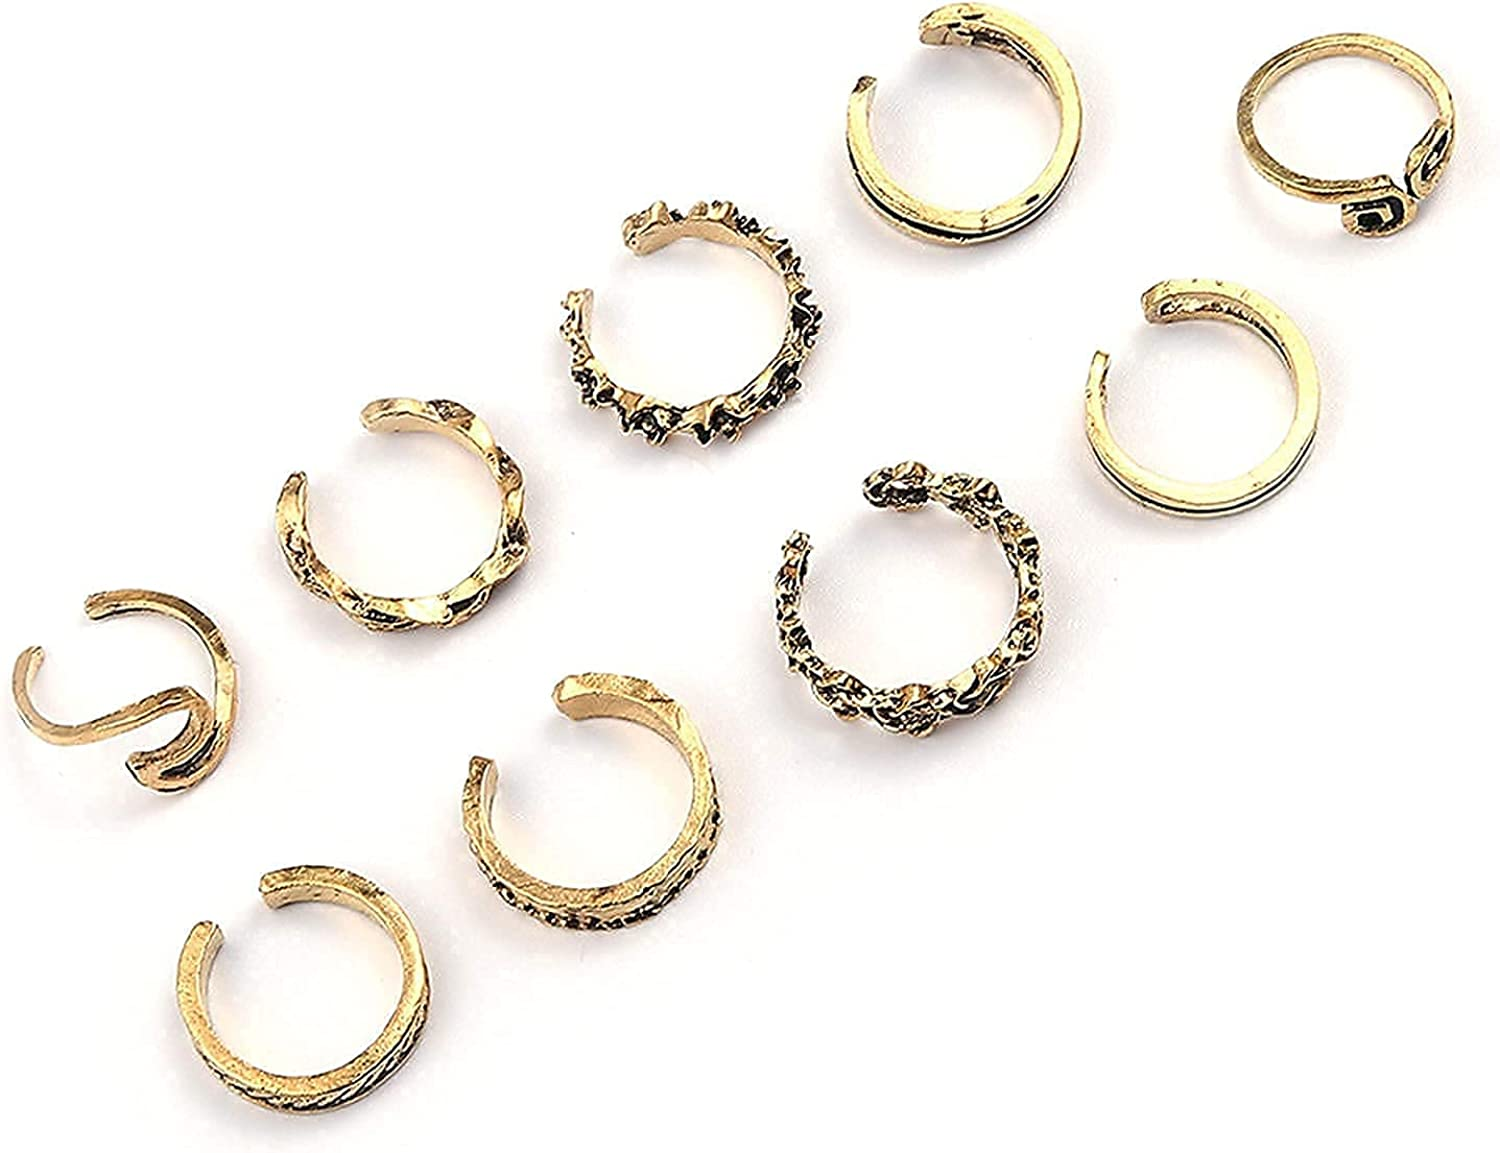 Larancie Boho Toe Rings Set Gold Vintage Pattern Carving Foot Joint Ring Beach Foot Ring knuckle Toe Jewelry for Women and Girl 9 PCS